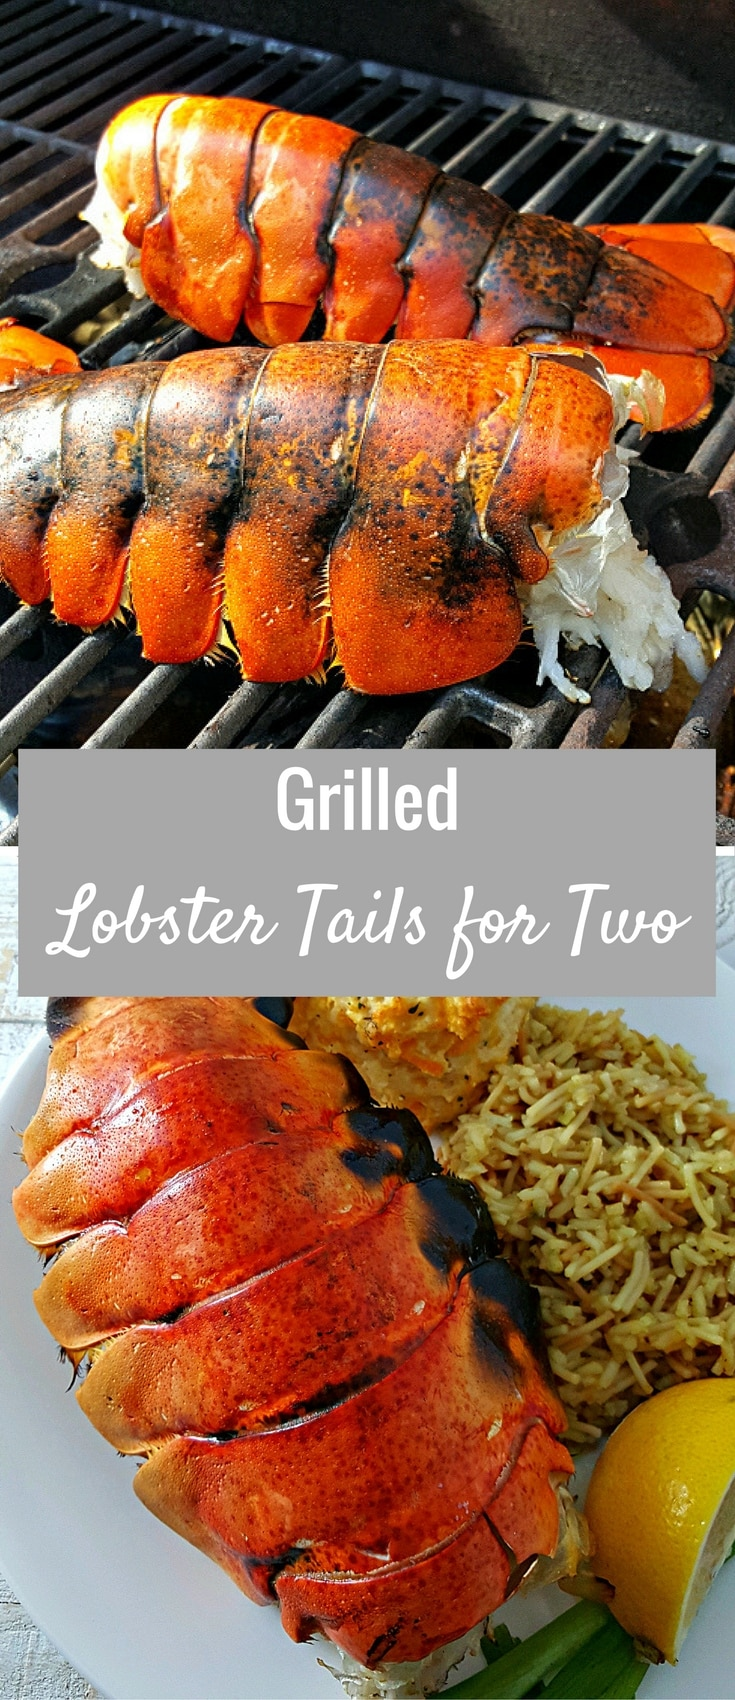 Grilled Lobster Tails Recipe for Two - A lobster lover's delight, these succulent grilled lobster tails are super quick and easy. Dip the flavorful meat into the rich buttery sauce. Lobster can be expensive but we spent about a quarter of what this would cost at a restaurant and felt like we were eating like kings. This recipe is a true taste of seafood at its finest. Sometimes you just need to treat yourselves with the finest food. Romantic dinner for date night.